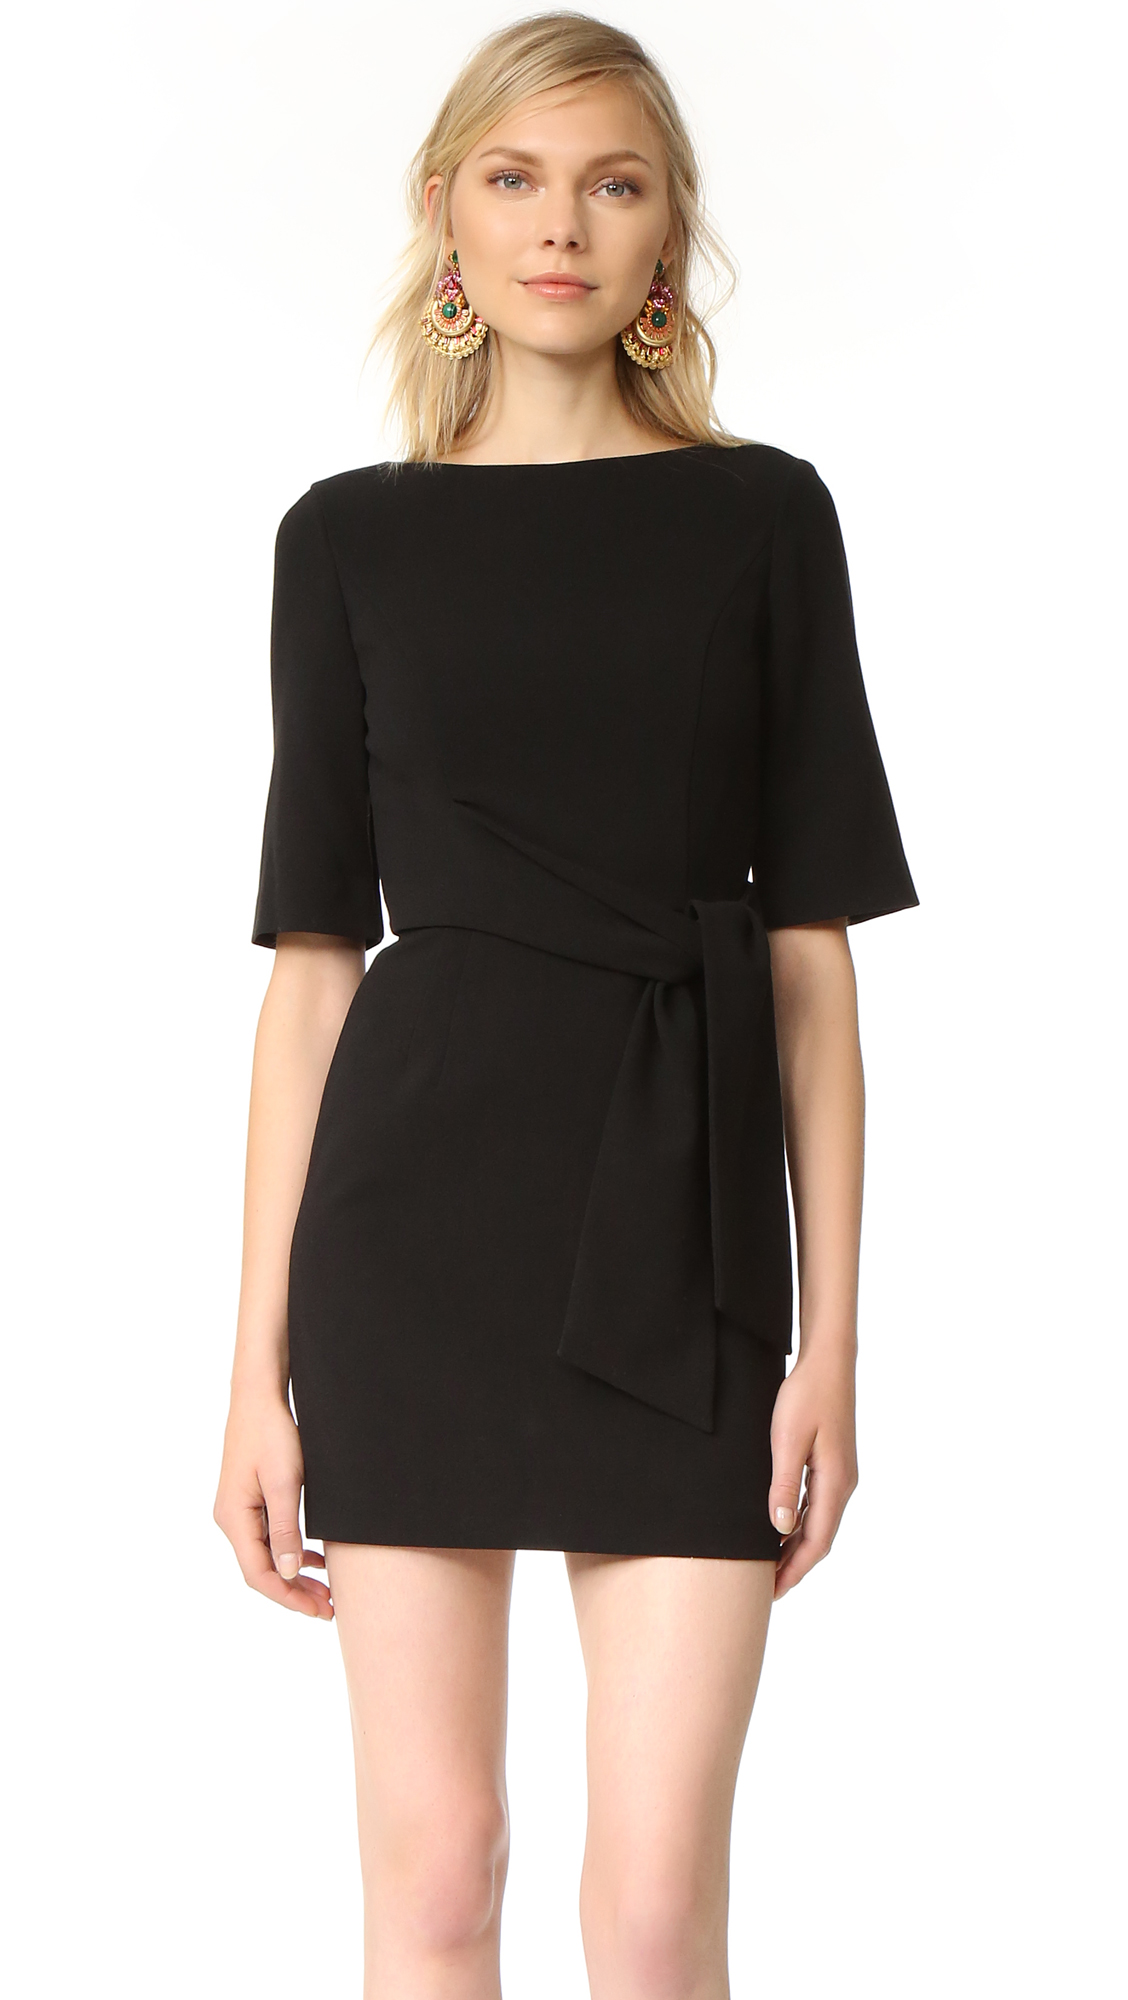 Alice + Olivia Virgil Wrap Dress - Black